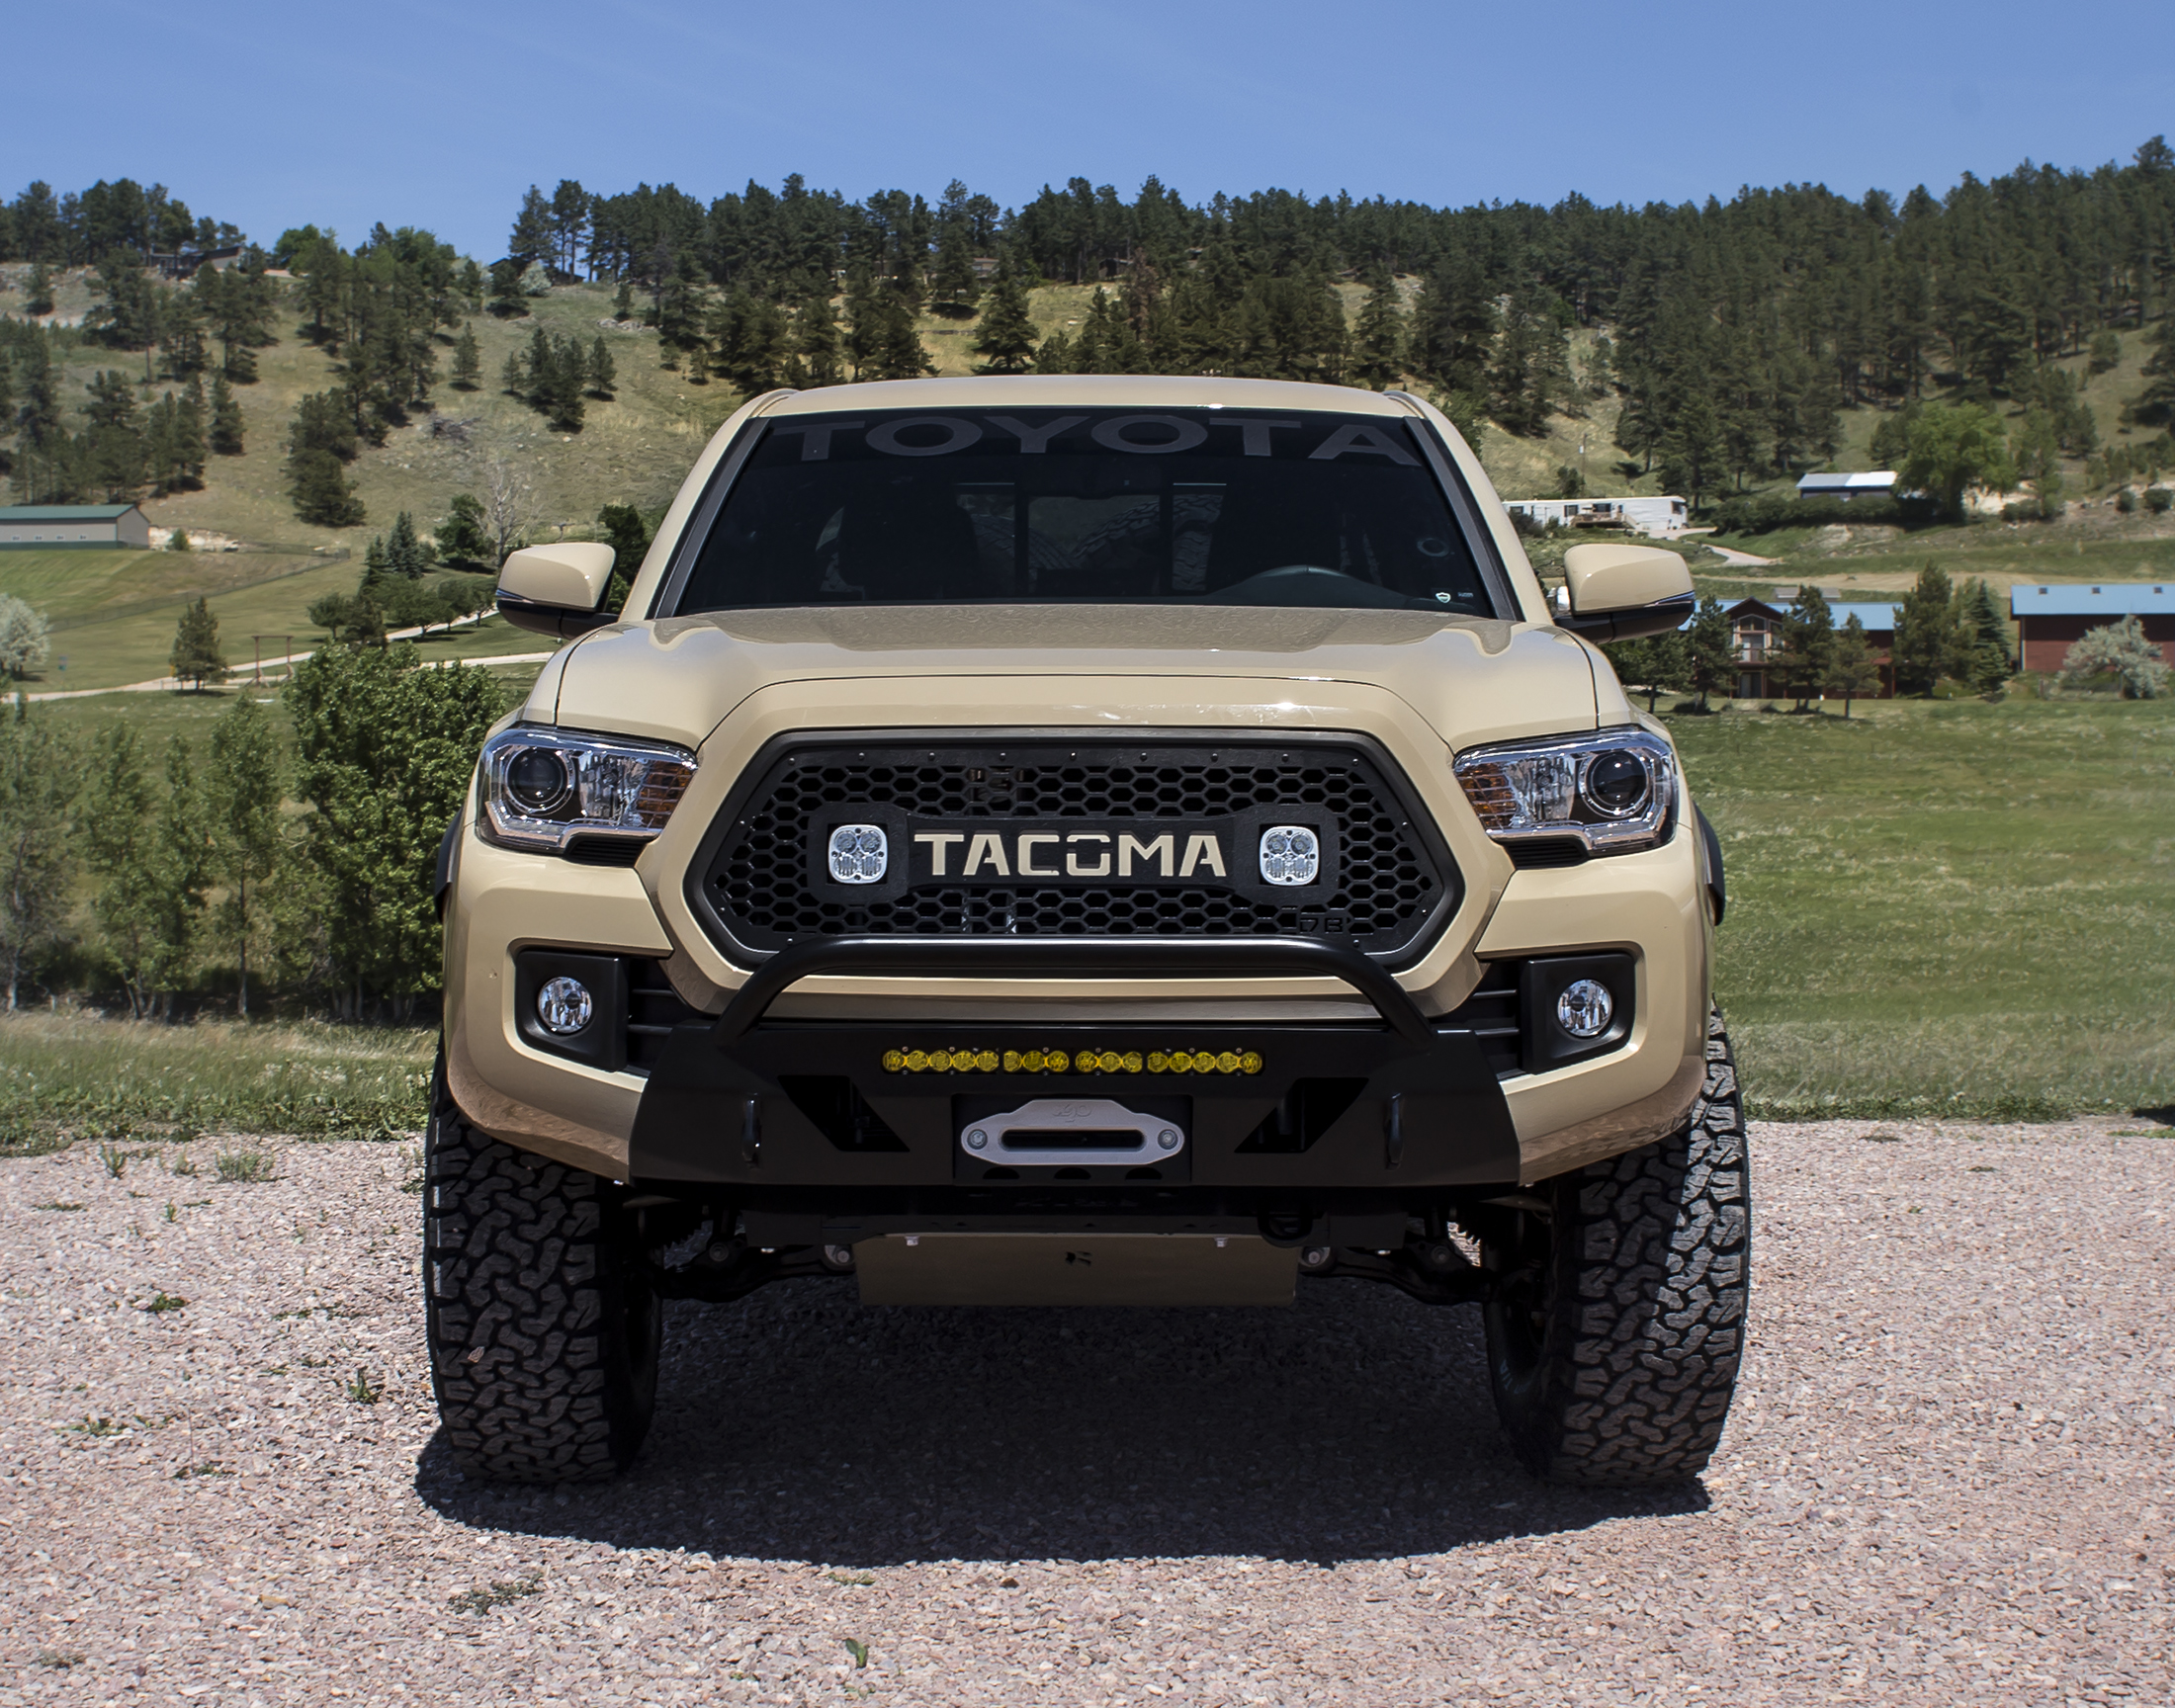 Toyota Tacoma Topper For Sale >> Bumpers : Pure Tacoma Accessories, Parts and Accessories for your Toyota Tacoma